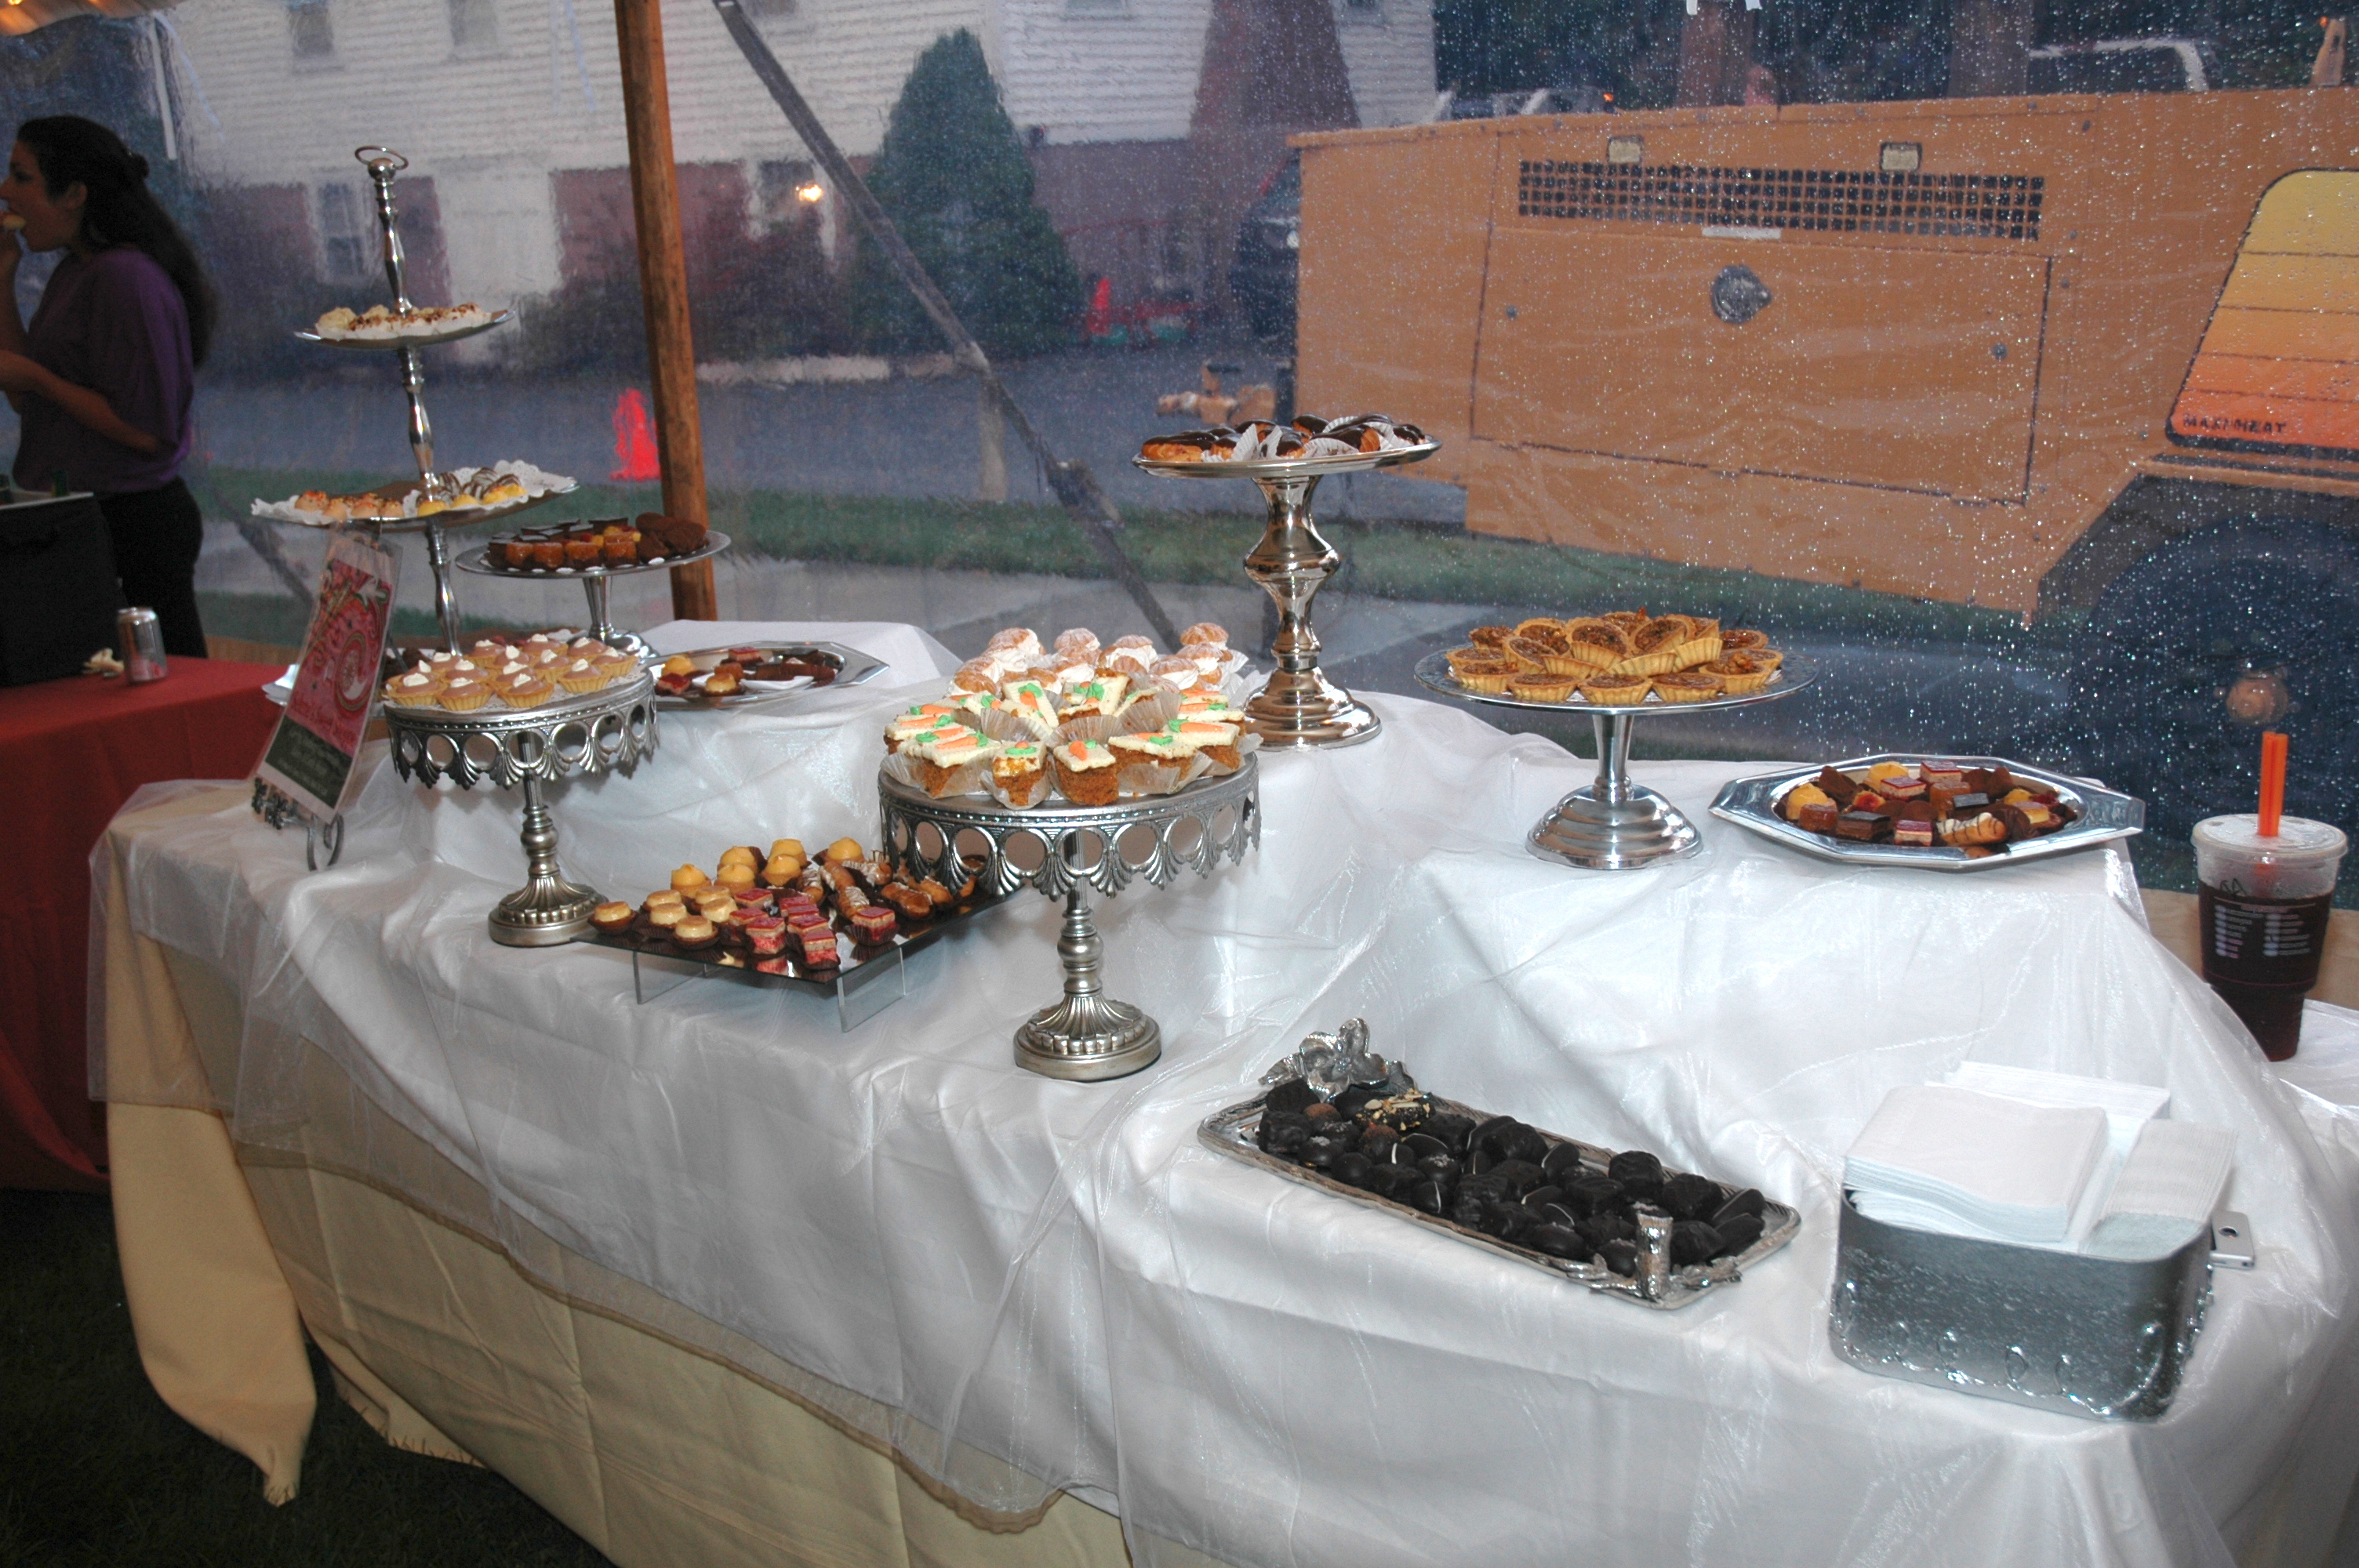 Shad Bake Dessert Table